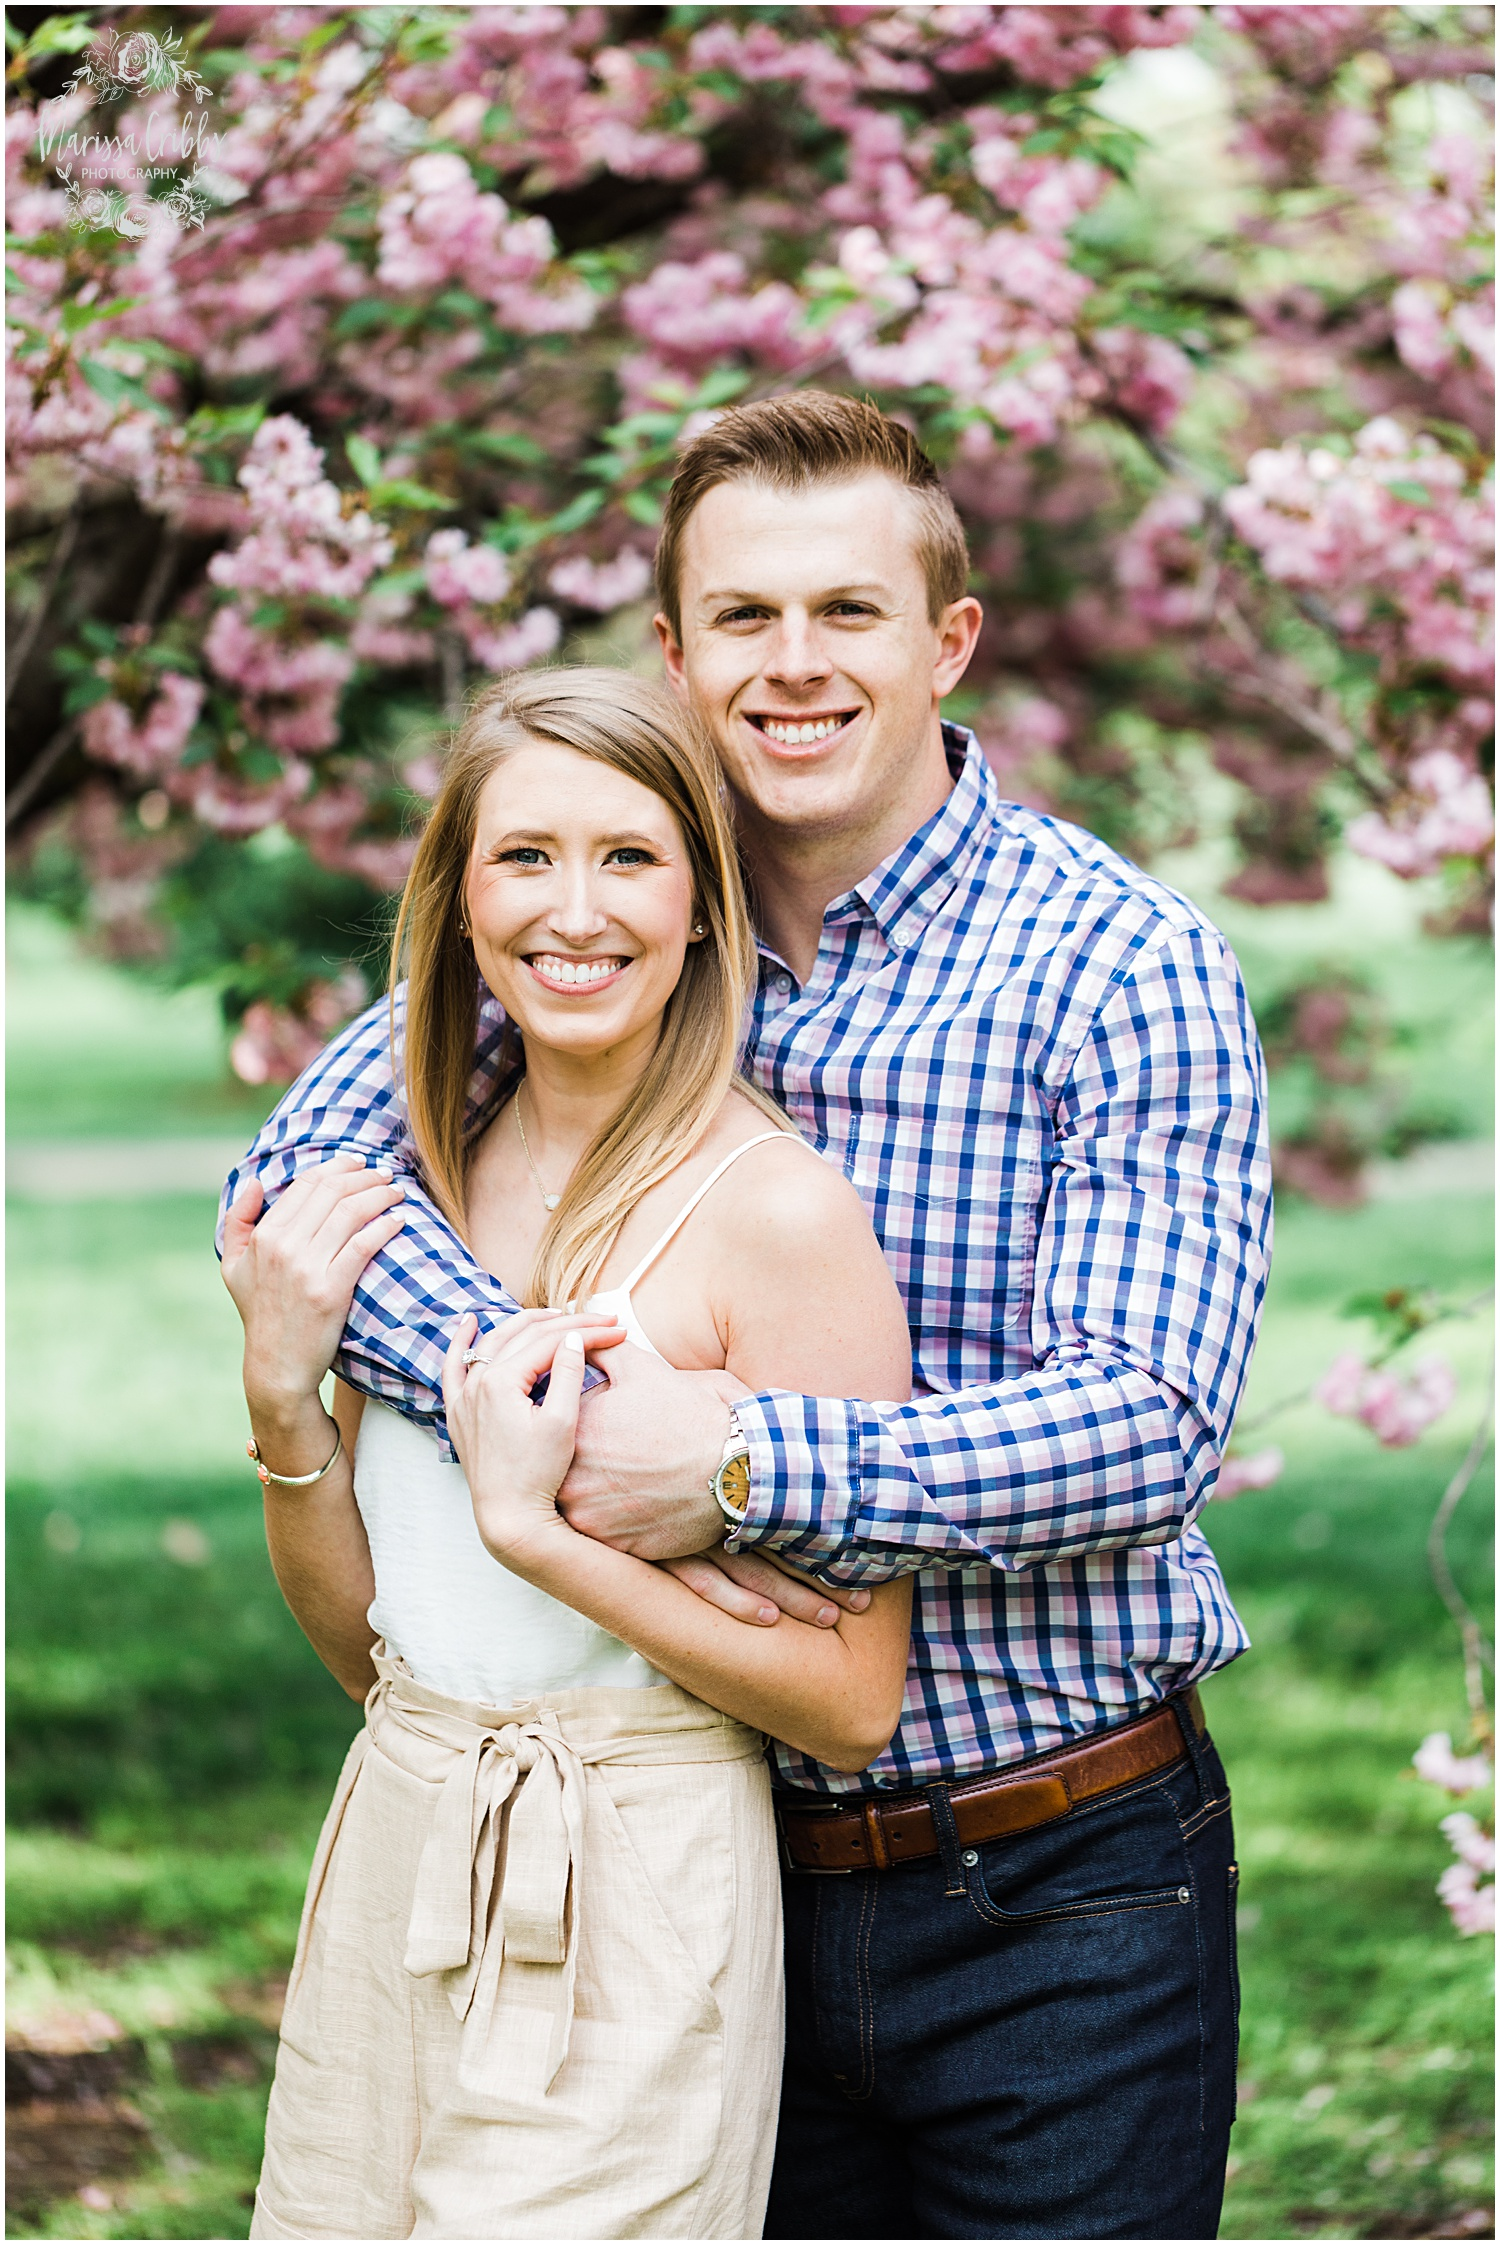 MADDY & KYLE ENGAGEMENT | MARISSA CRIBBS PHOTOGRAPHY_7604.jpg